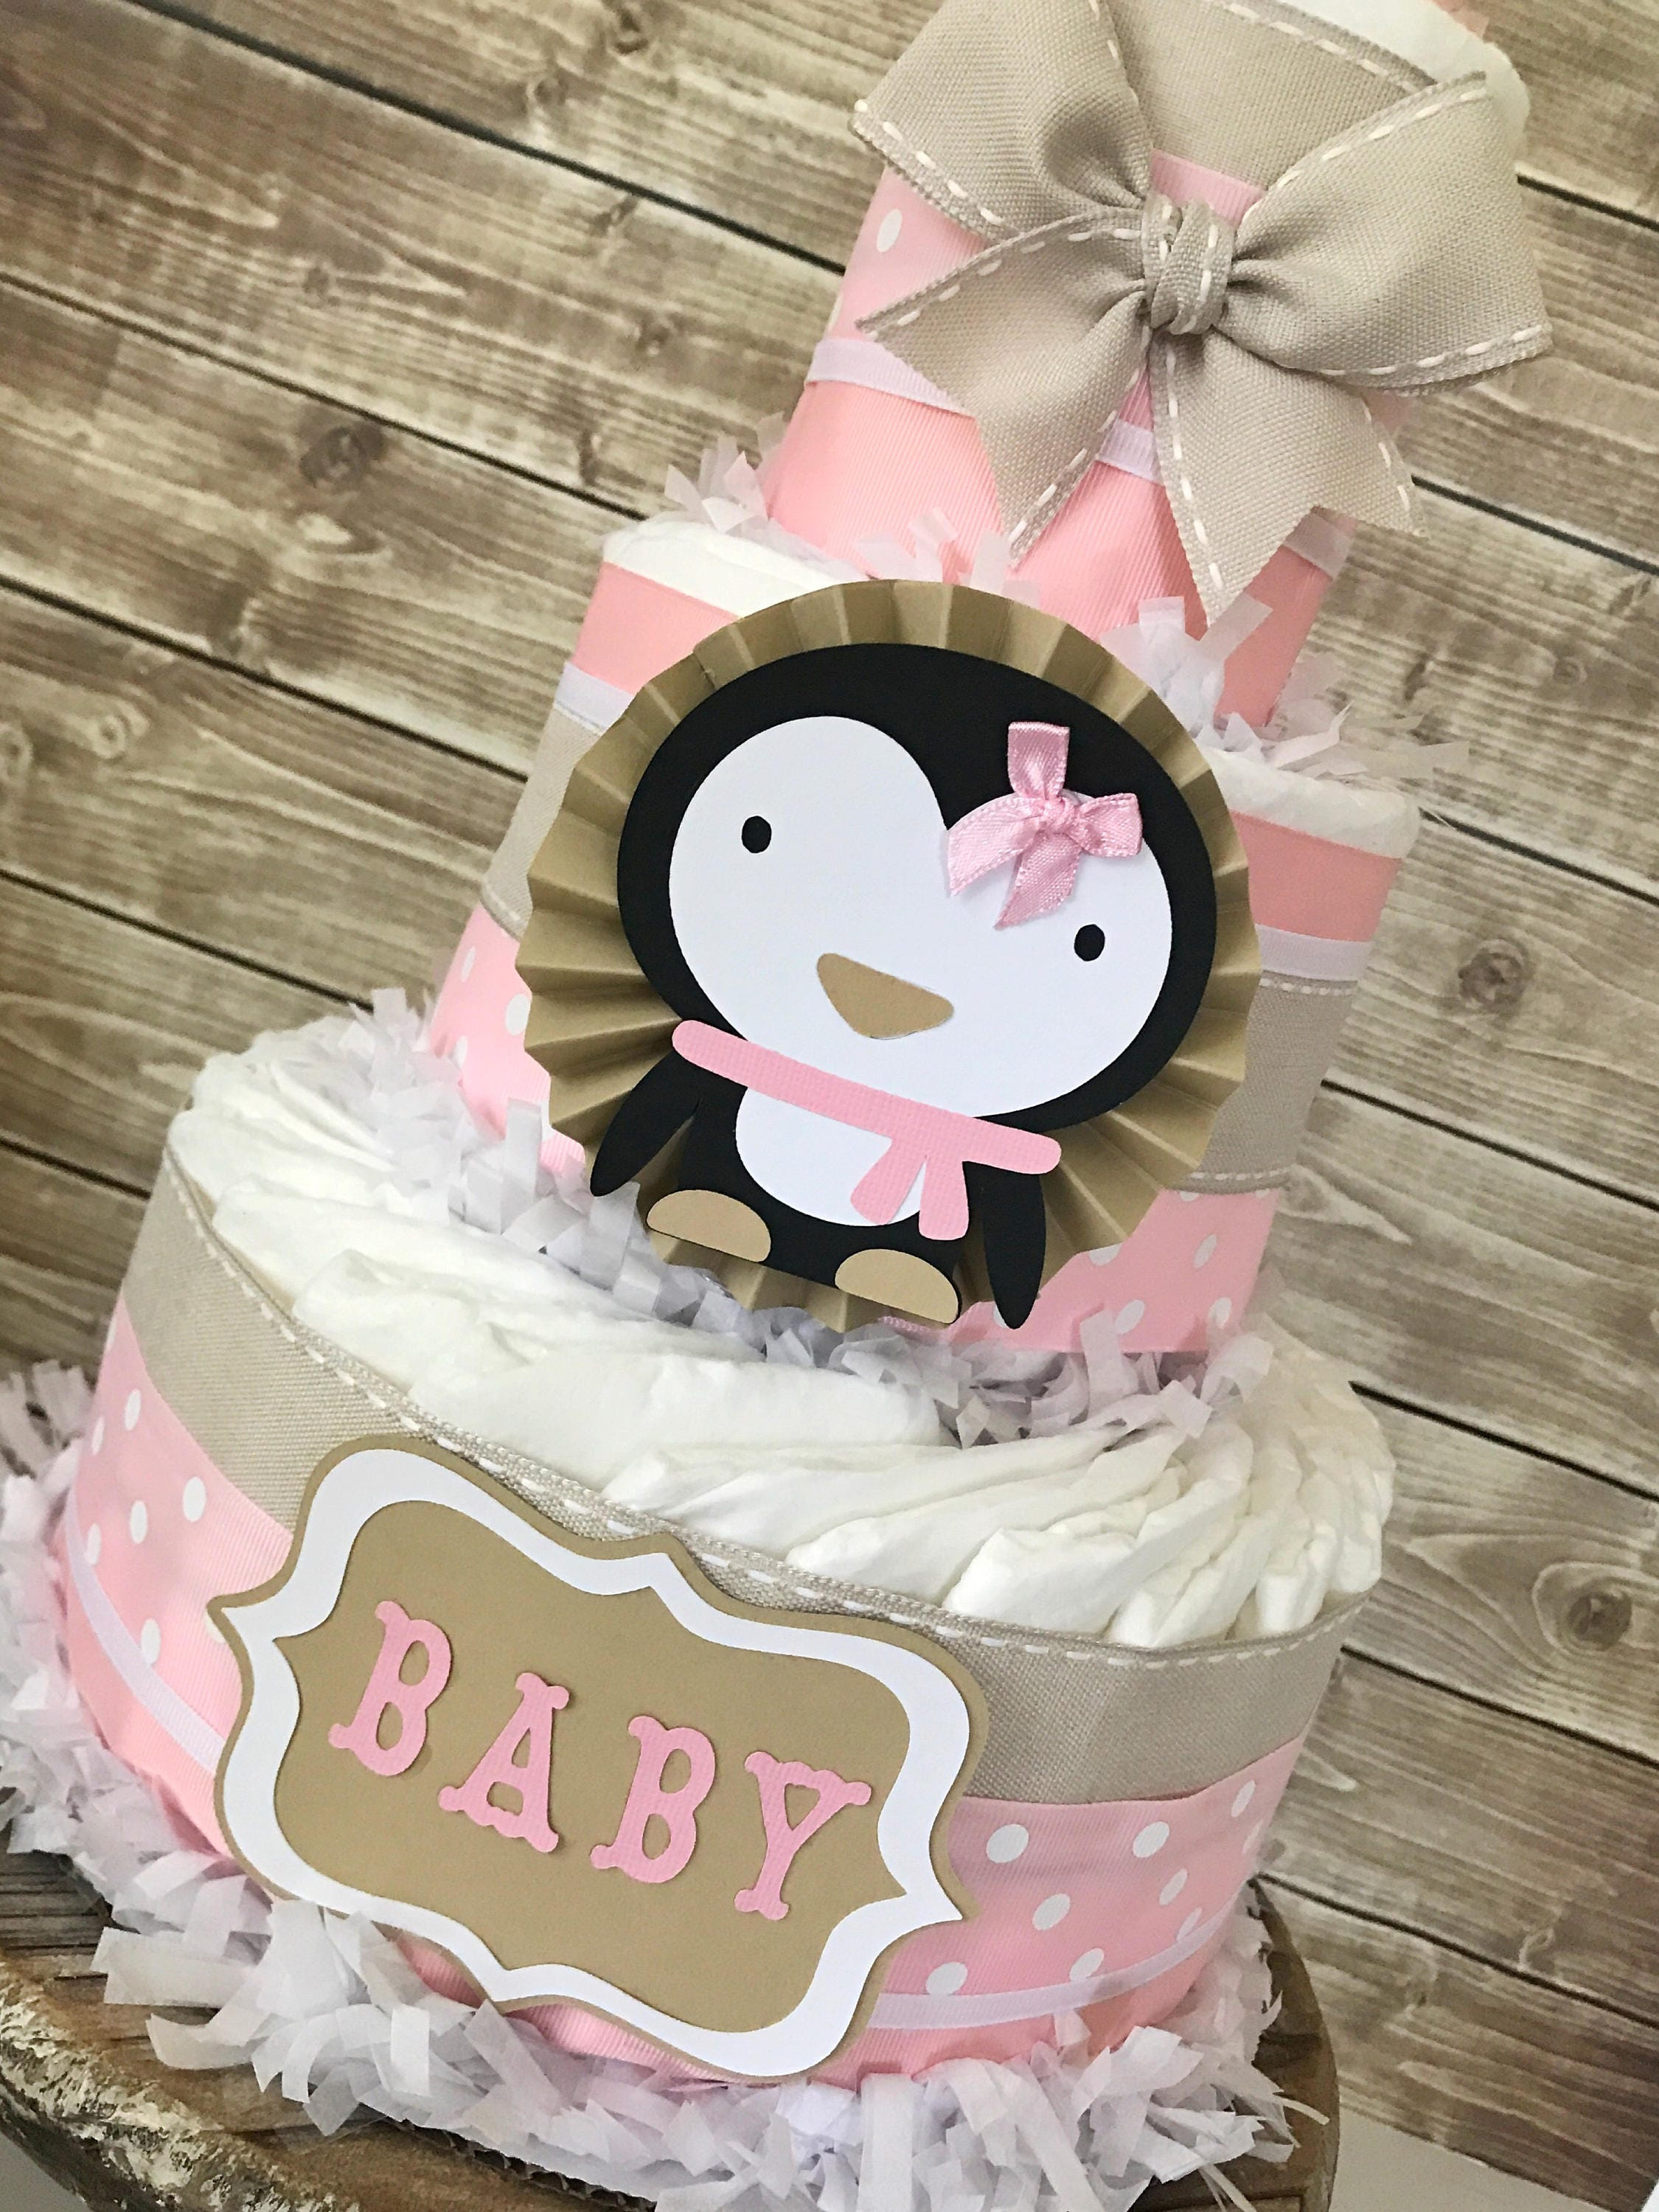 Penguin Diaper Cake In Mocha, Pink And White, Penguin Baby Shower  Centerpiece For Girls, Winter Theme Baby Shower Decorations